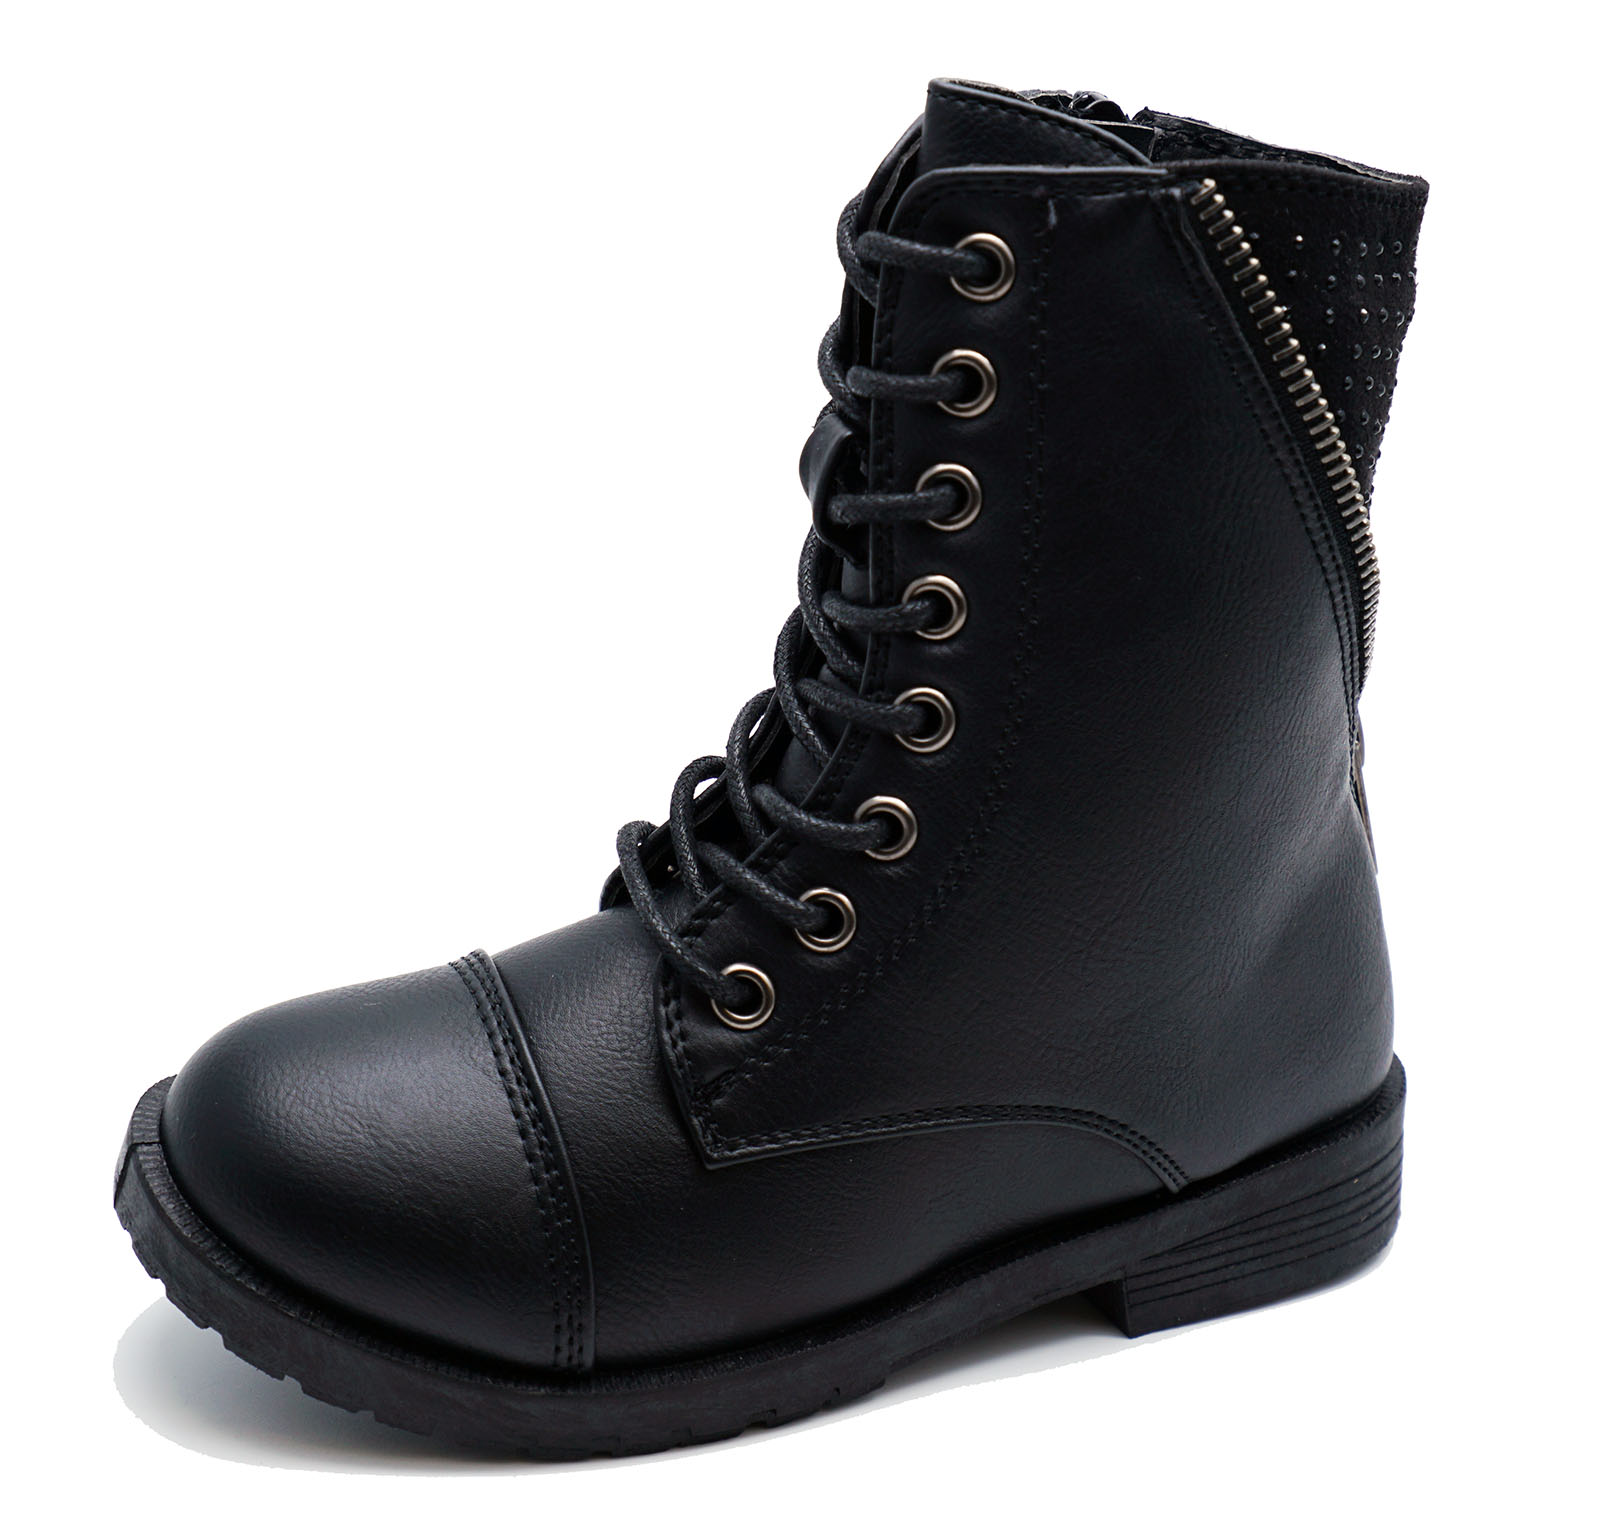 GIRLS KIDS CHILDRENS BLACK LACE-UP SCHOOL ZIP-UP CALF ANKLE BOOTS SHOES 8-13